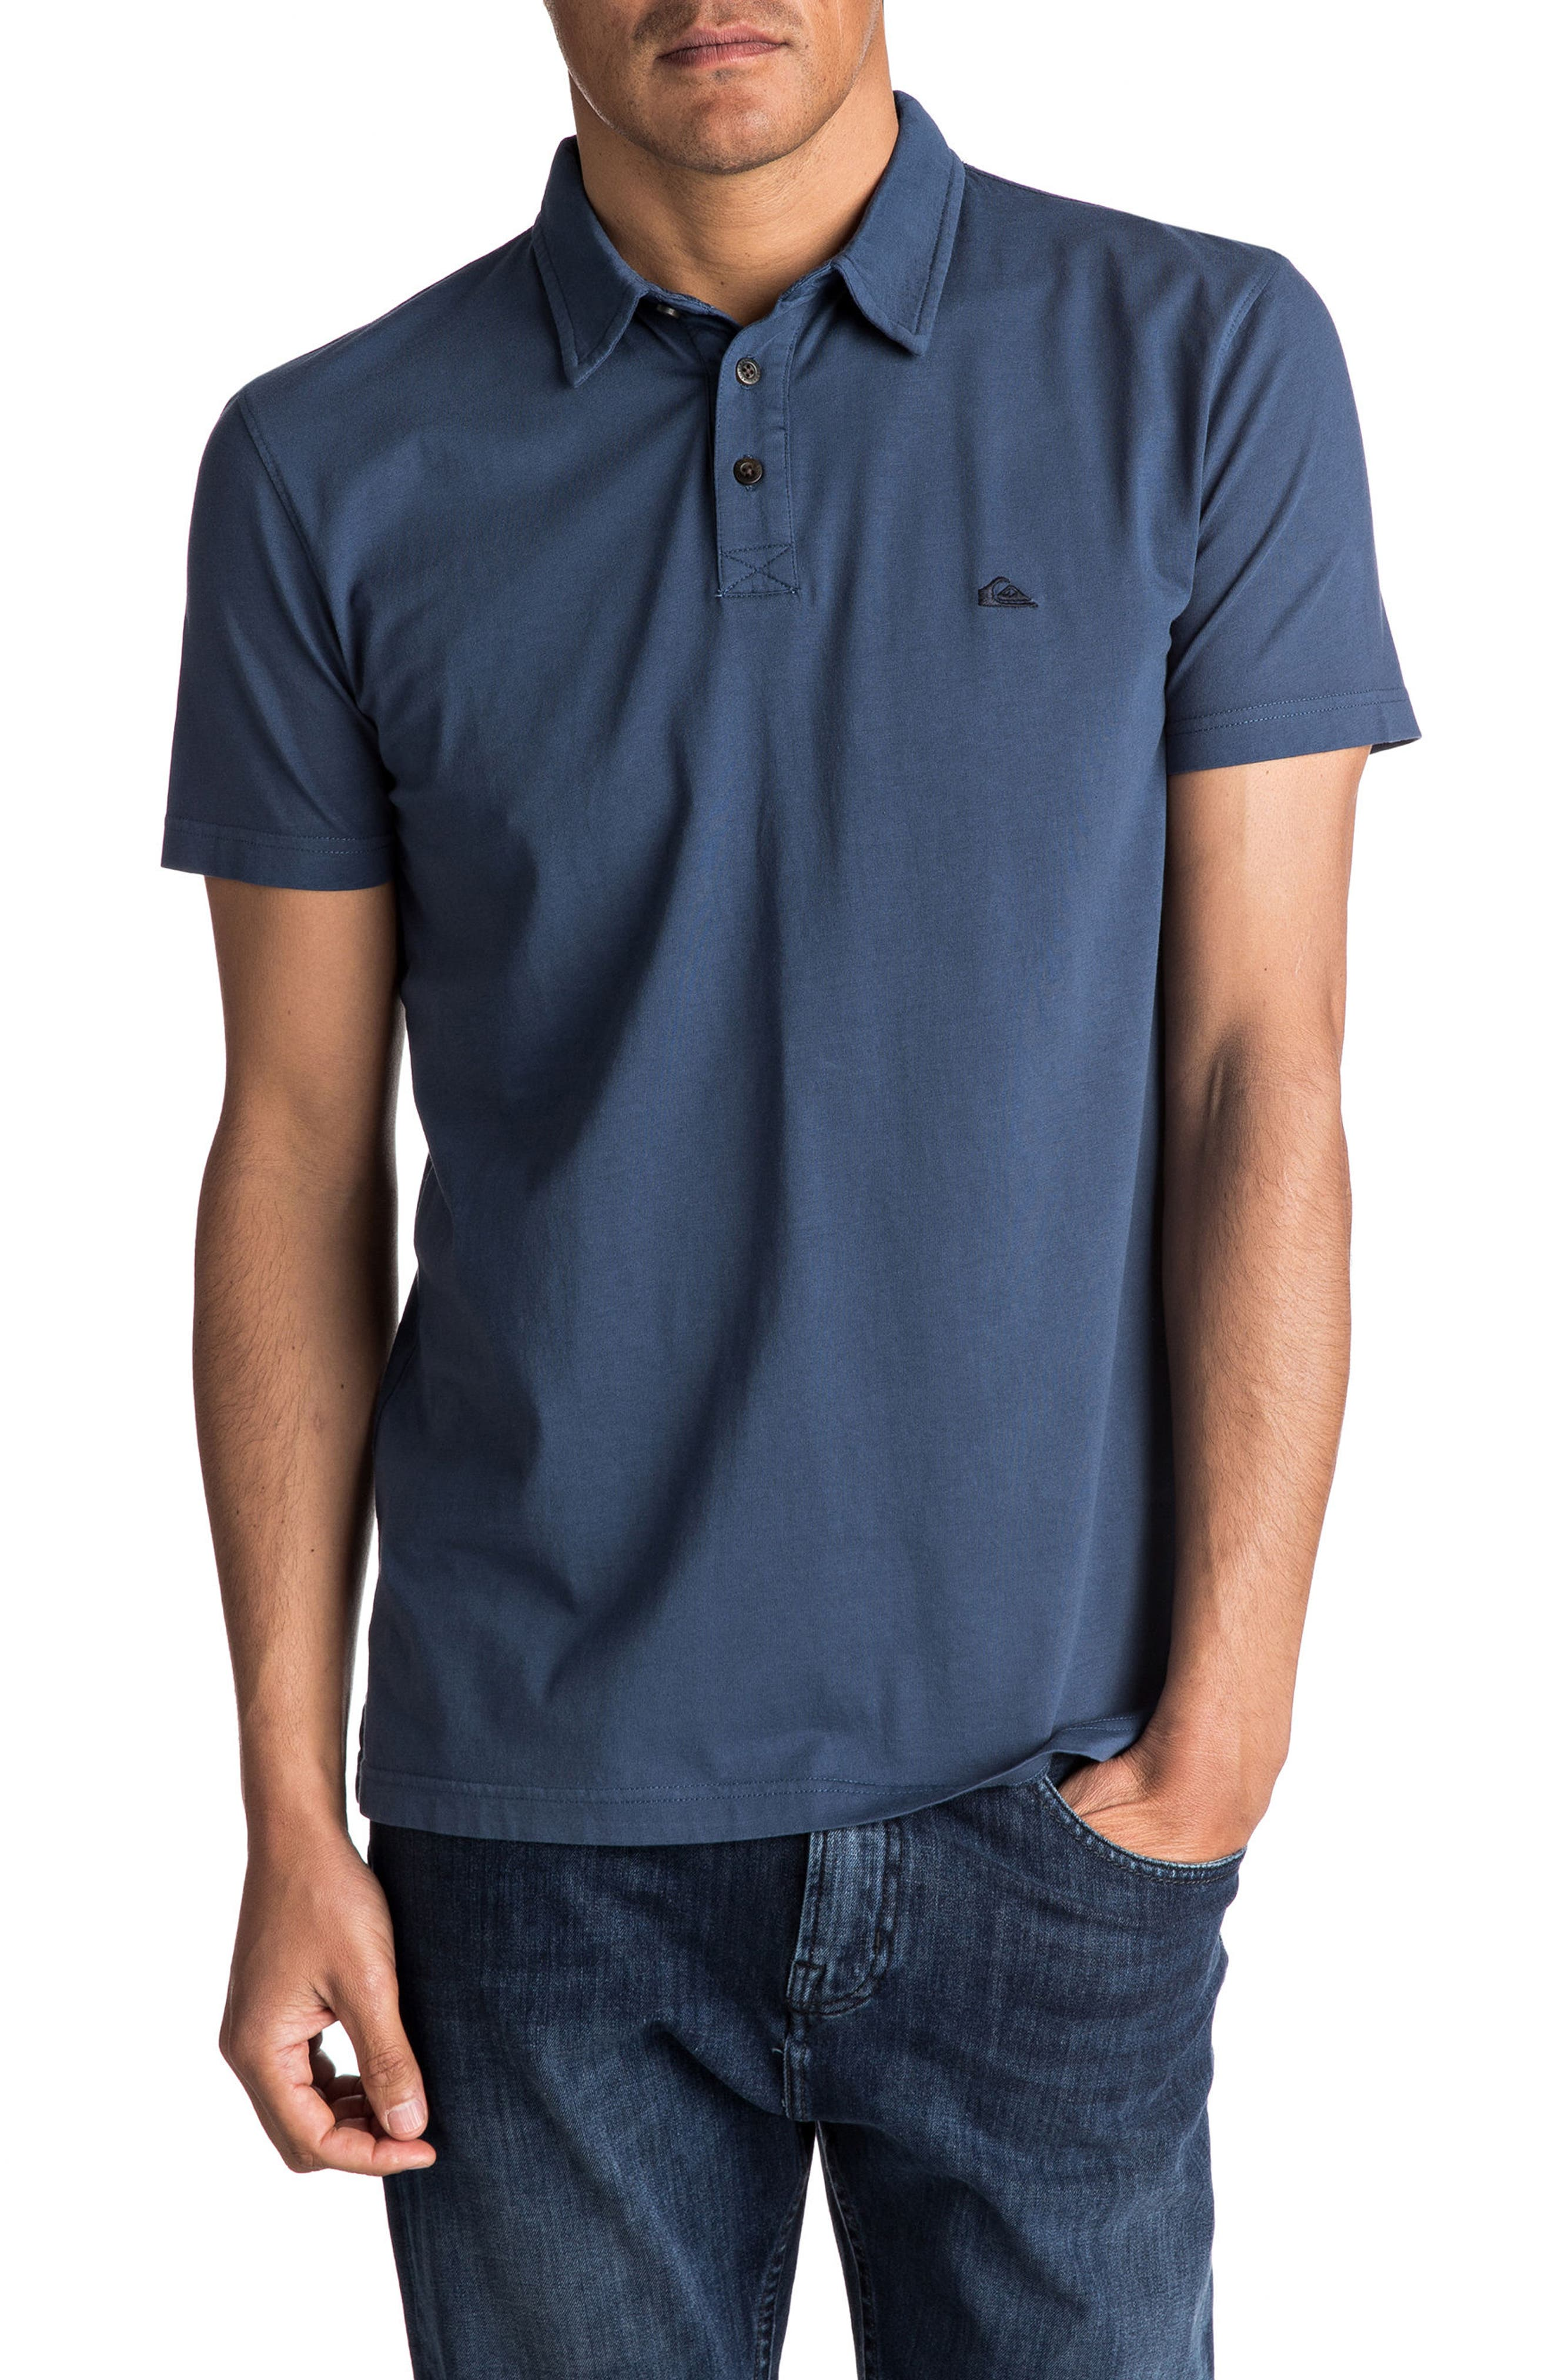 Alternate Image 1 Selected - Quiksilver Sun Cruise Jersey Polo